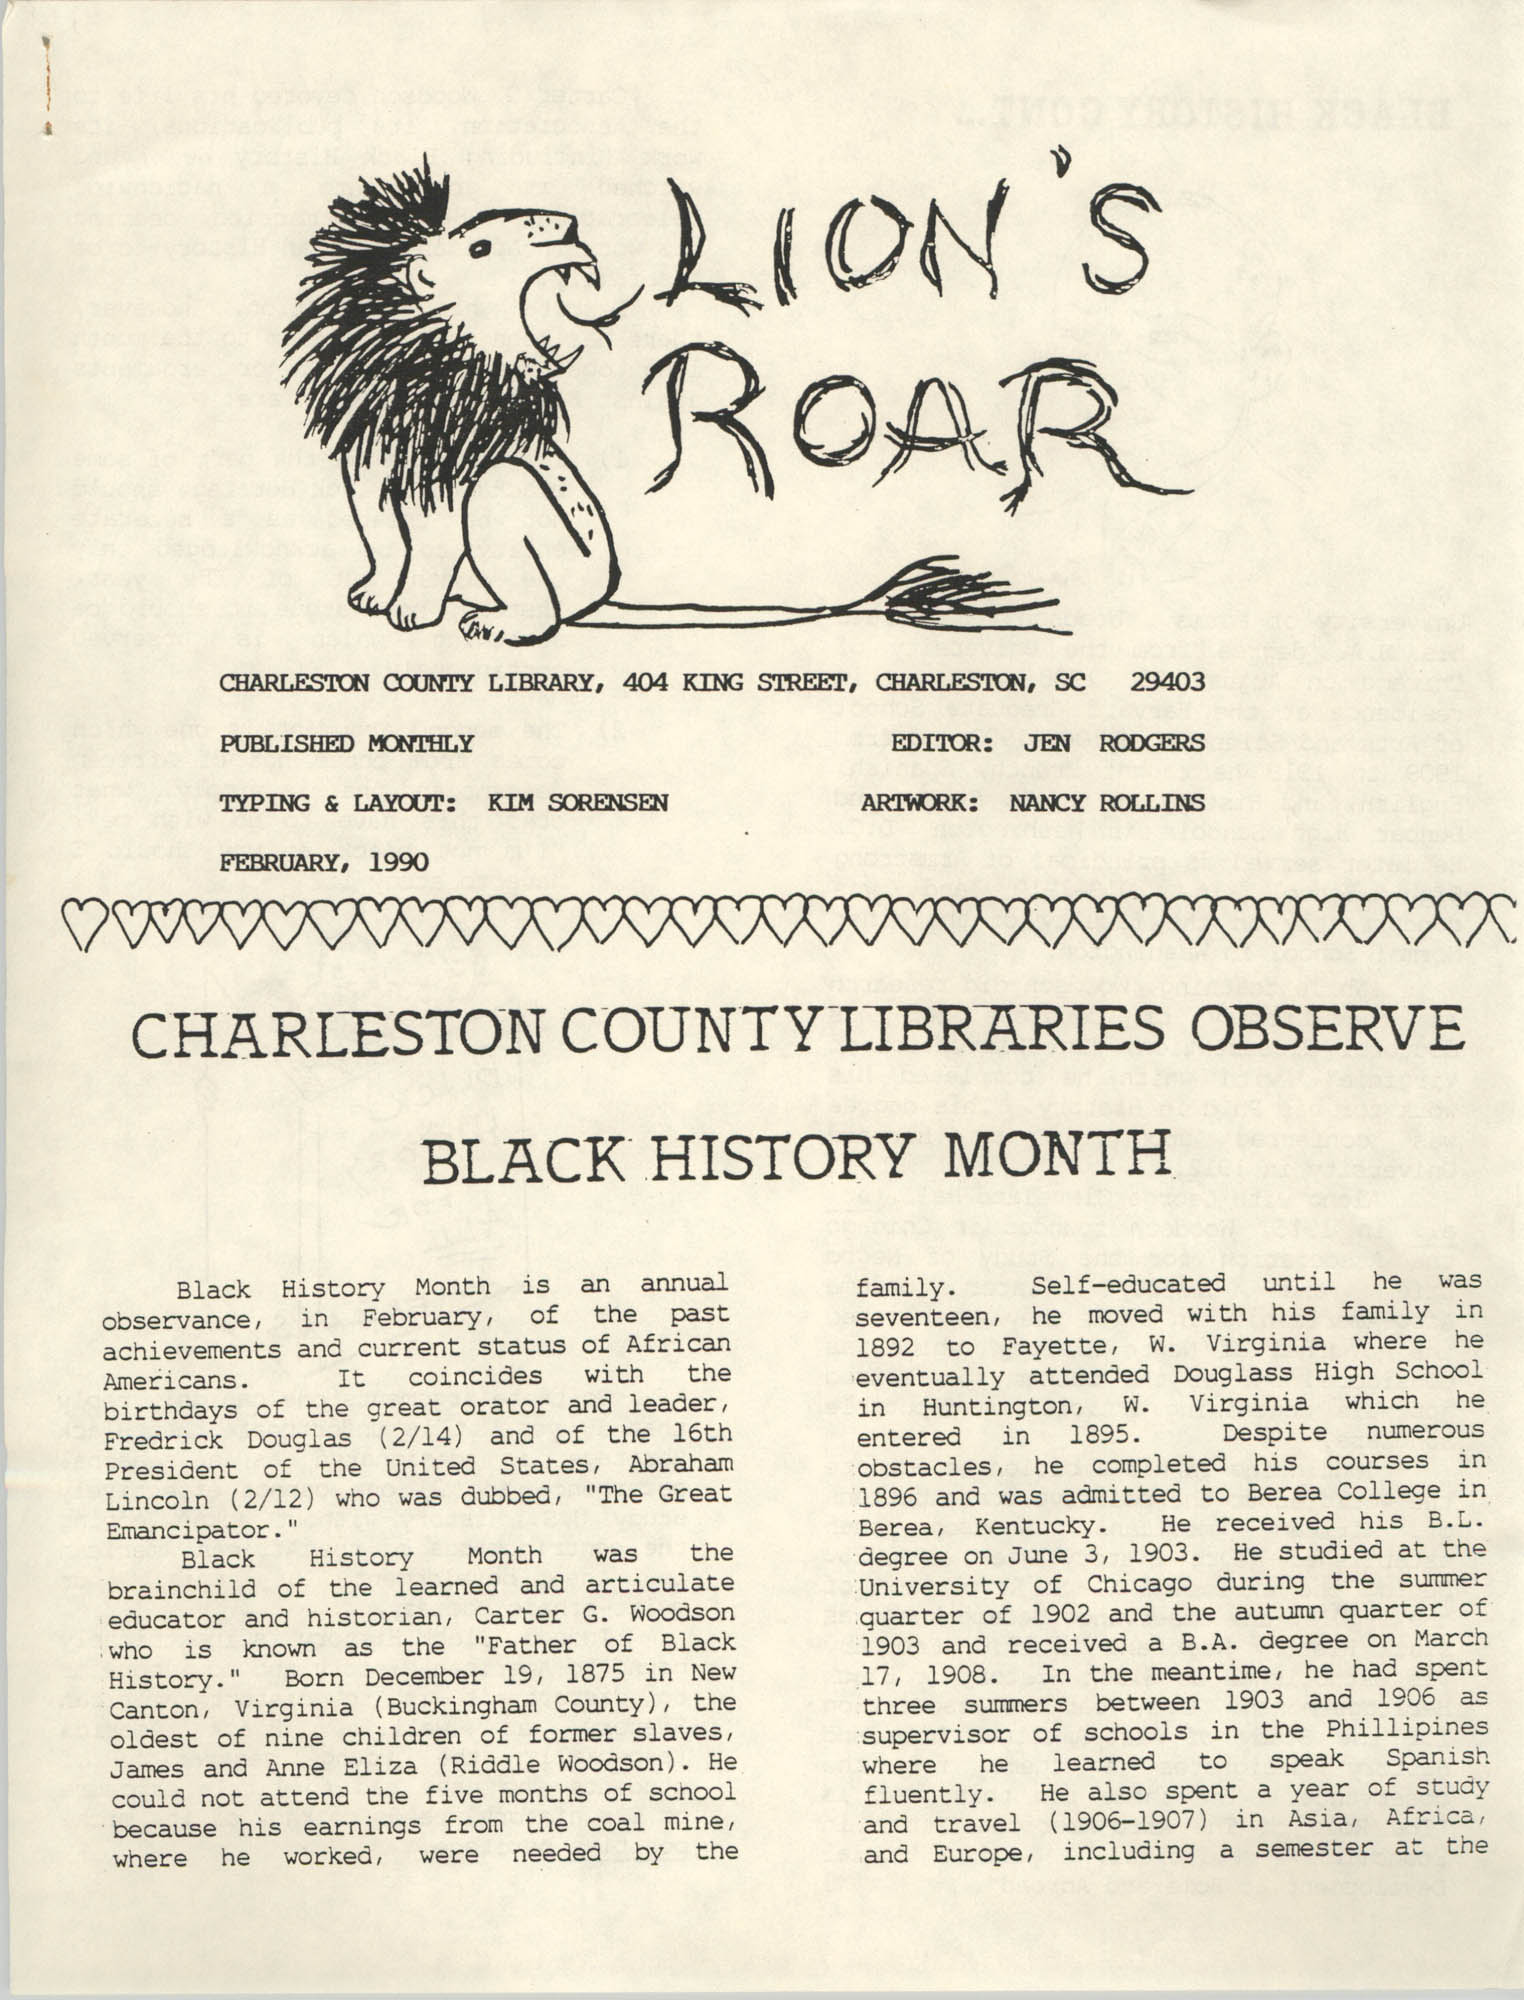 The Lion's Roar, February 1990